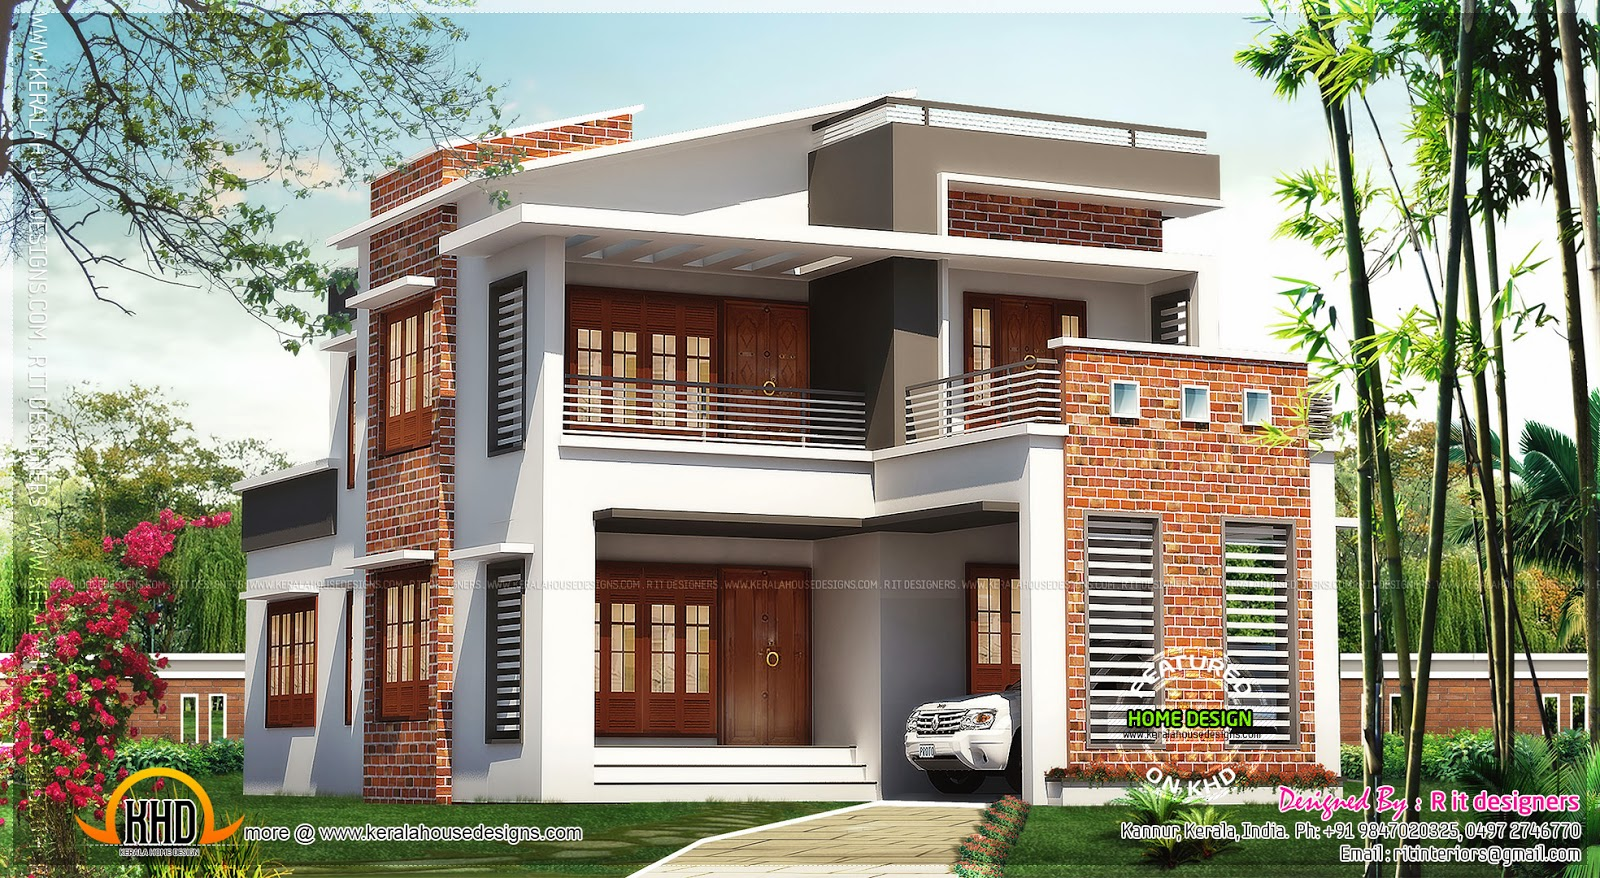 house 1735 square feet - Home Design In India